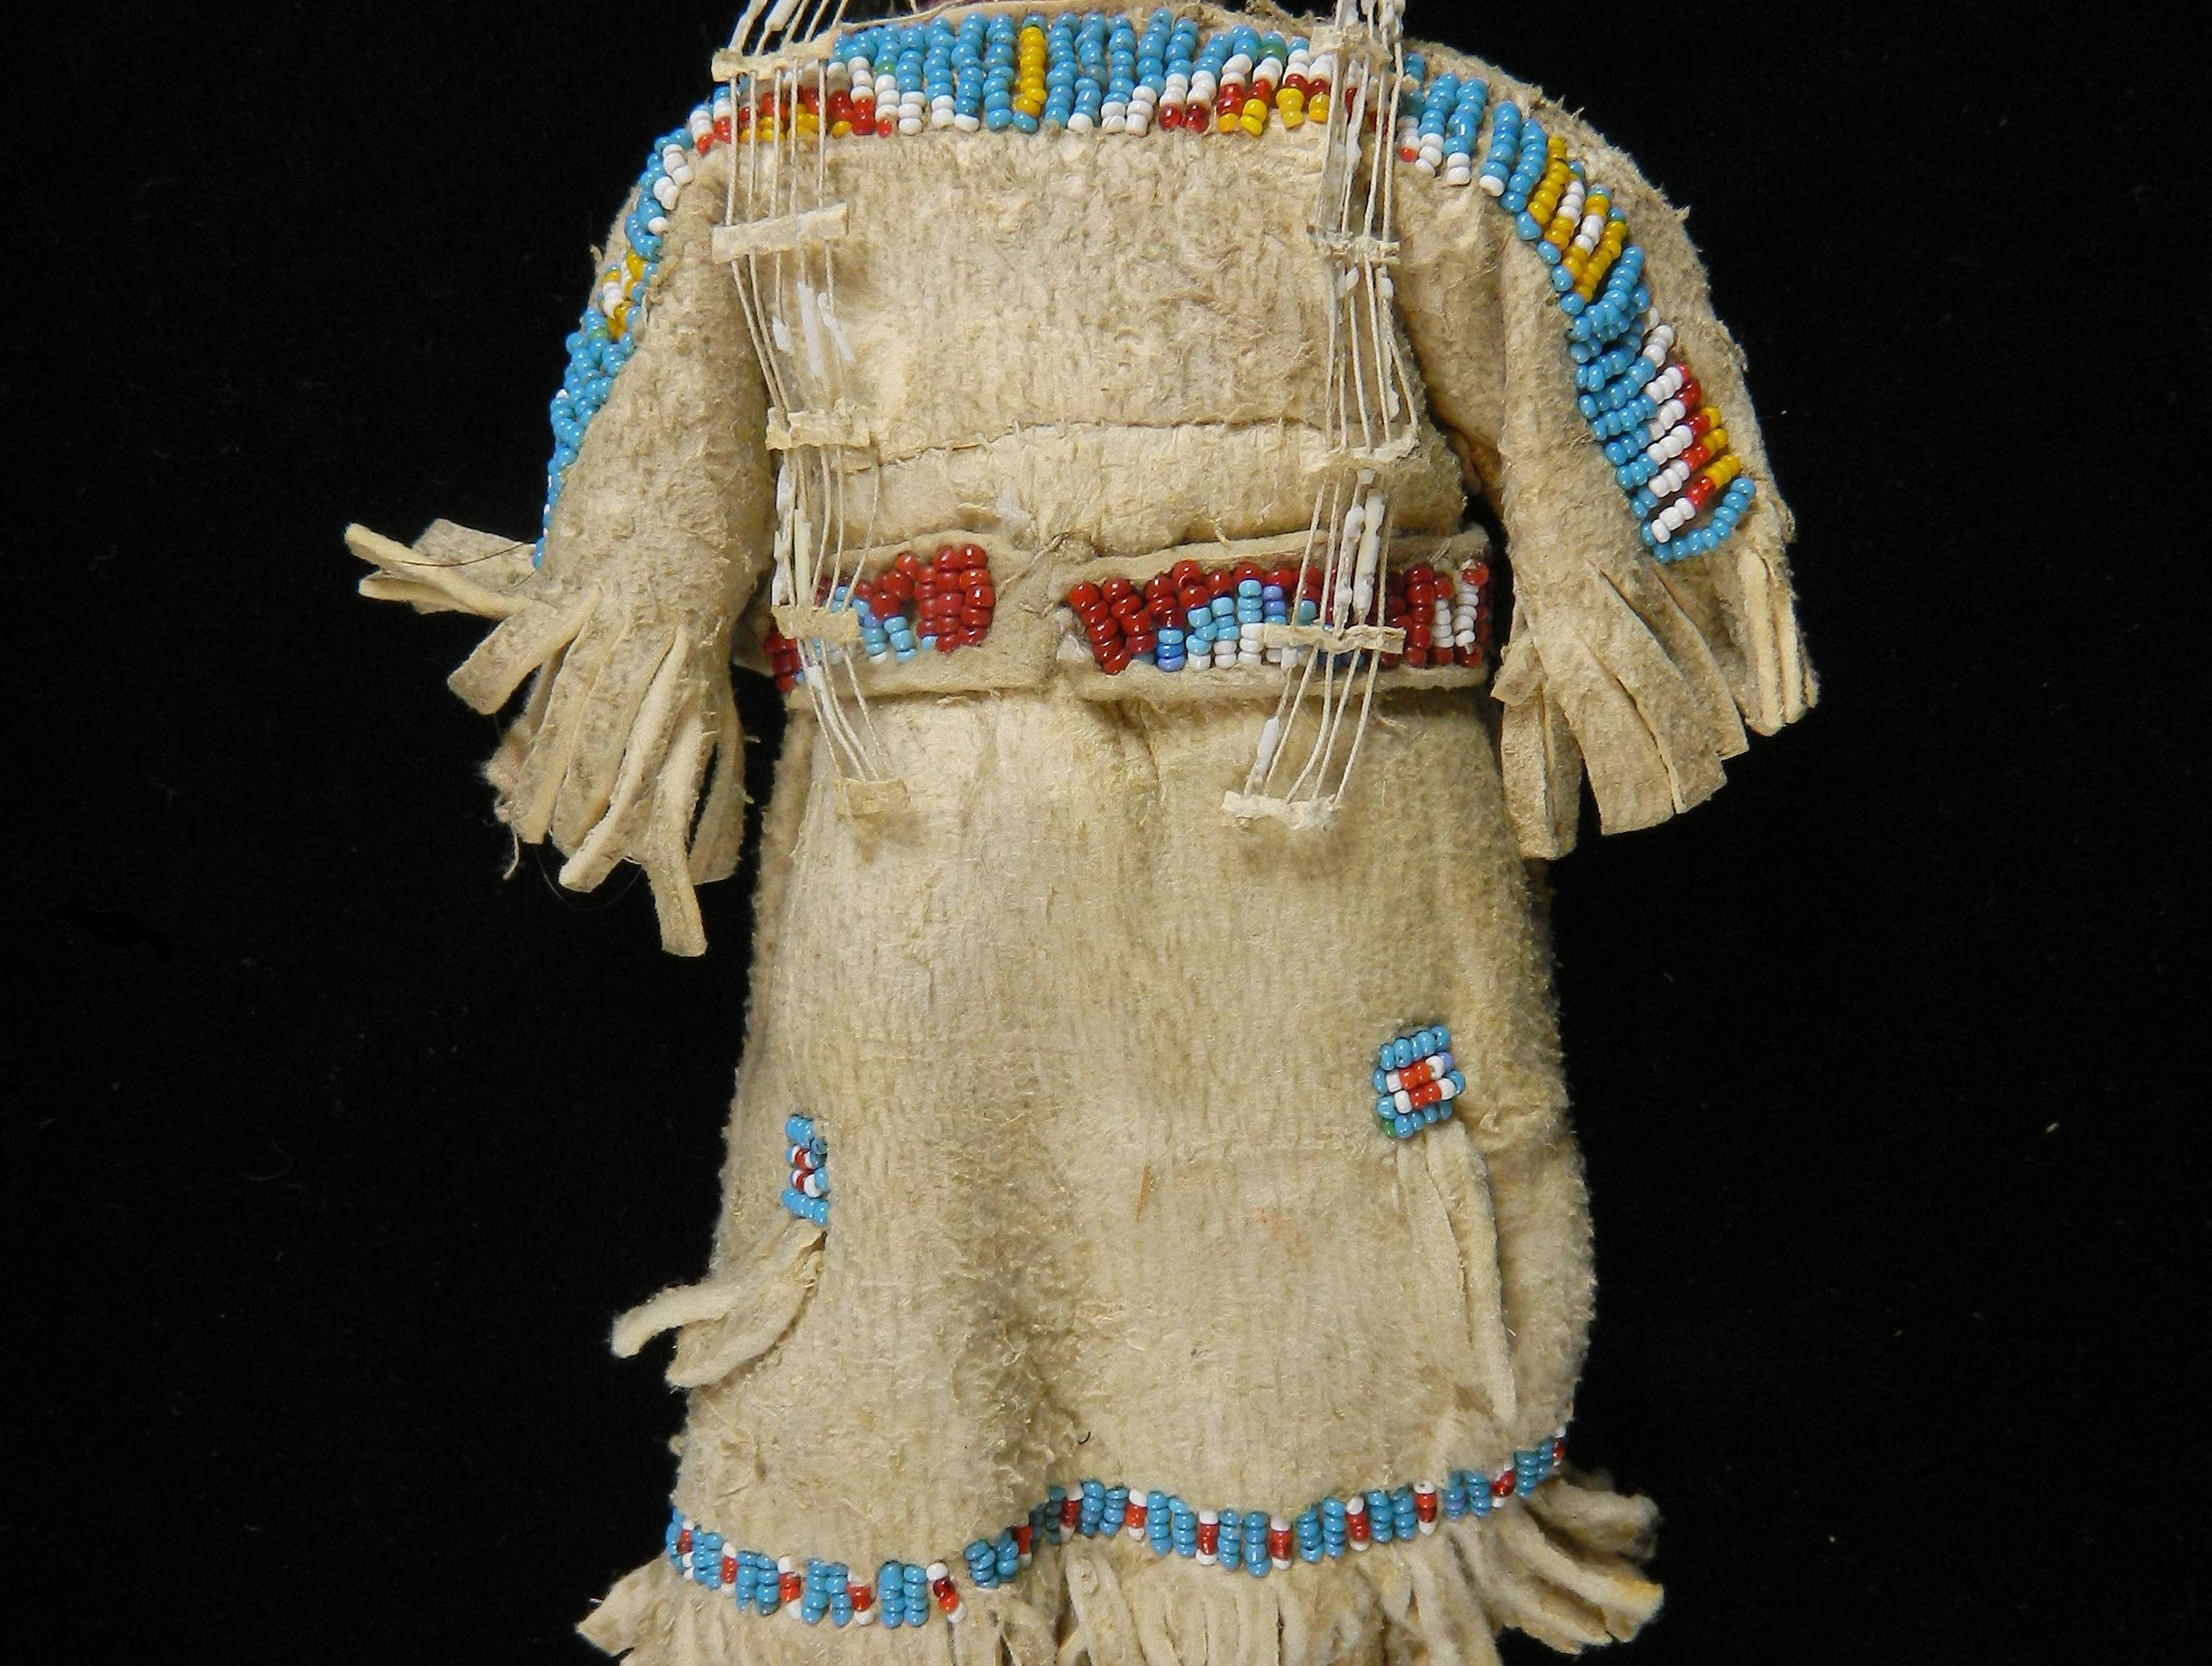 "This toy doll created by a member of the Lakota Indians is part of a new exhibit at the McClung Museum of Natural History and Culture. ""Brightly Beaded: North American Indian Glass Beadwork"" is shown at the University of Tennessee museum through June 1."